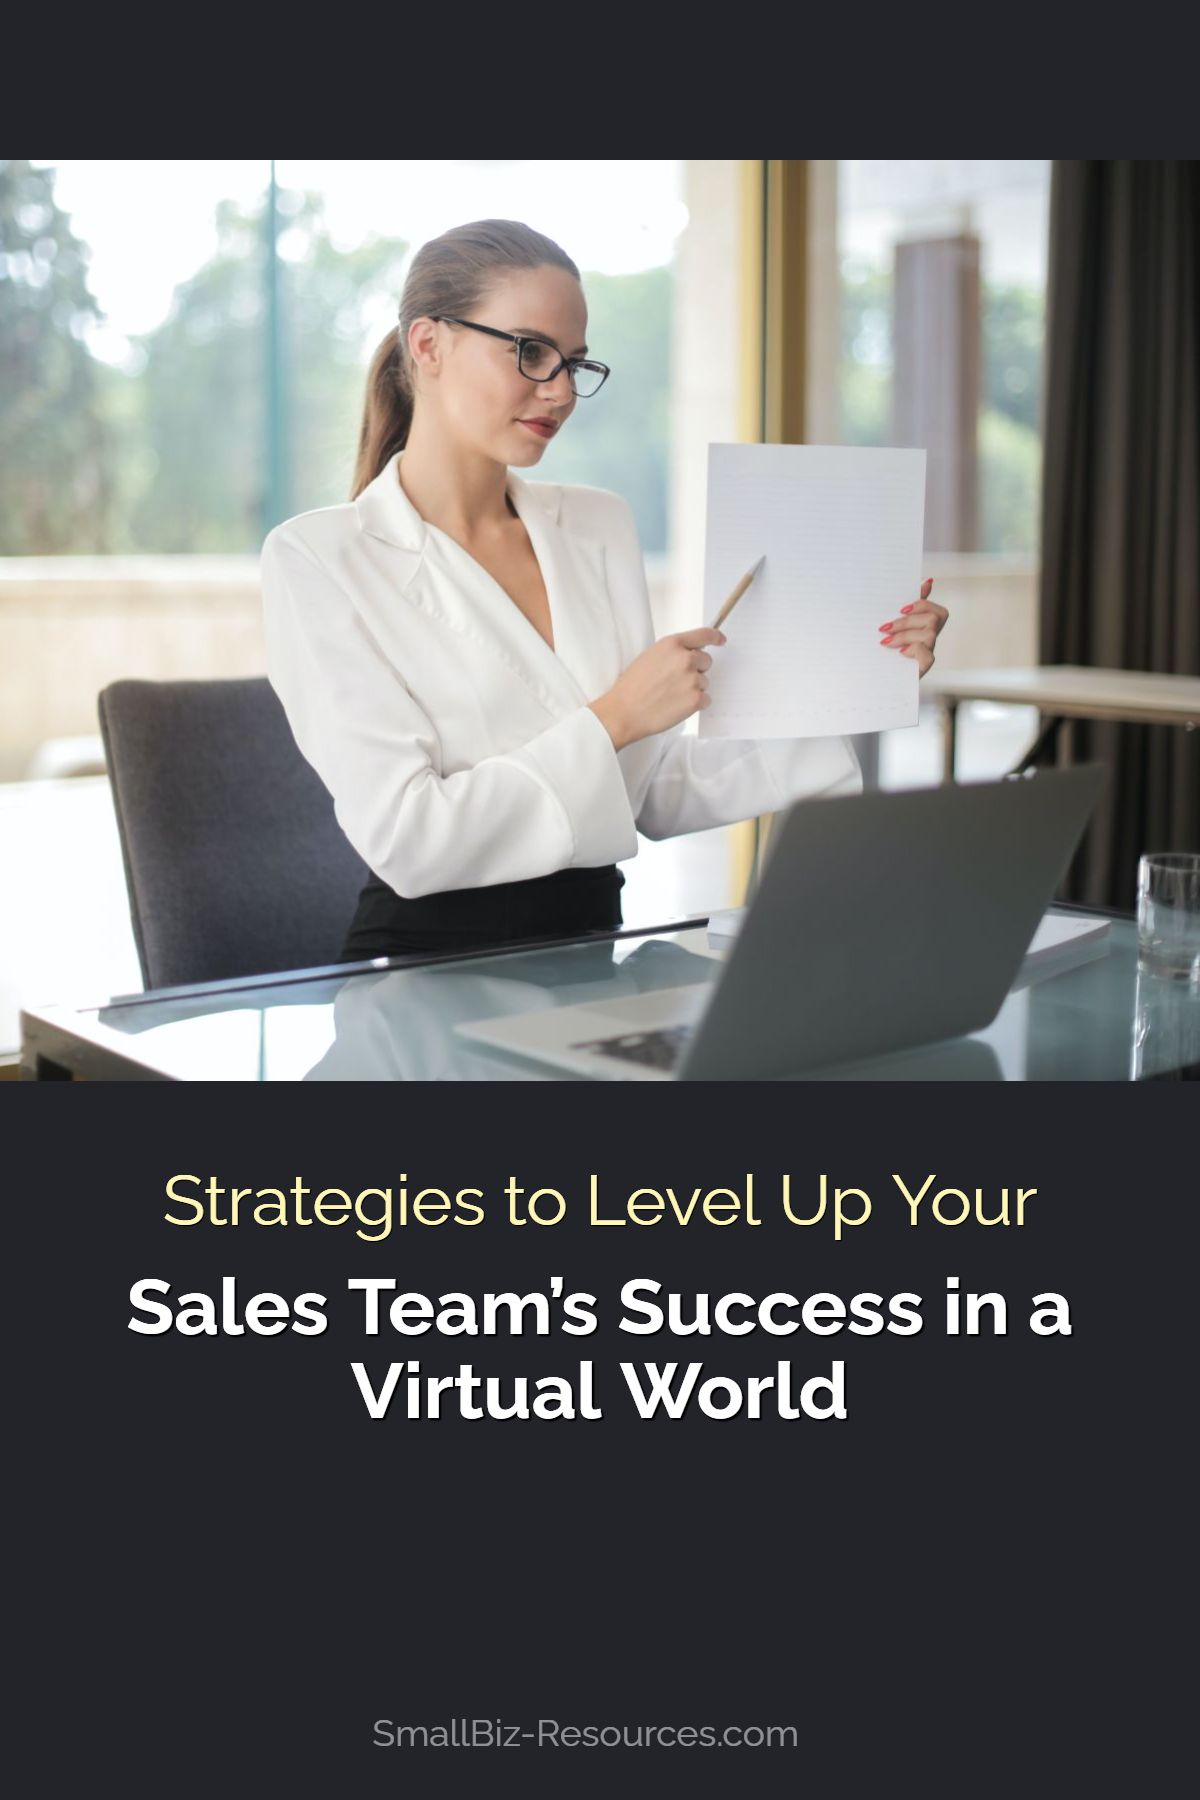 Strategies to Level Up Your Sales Team's Success in a